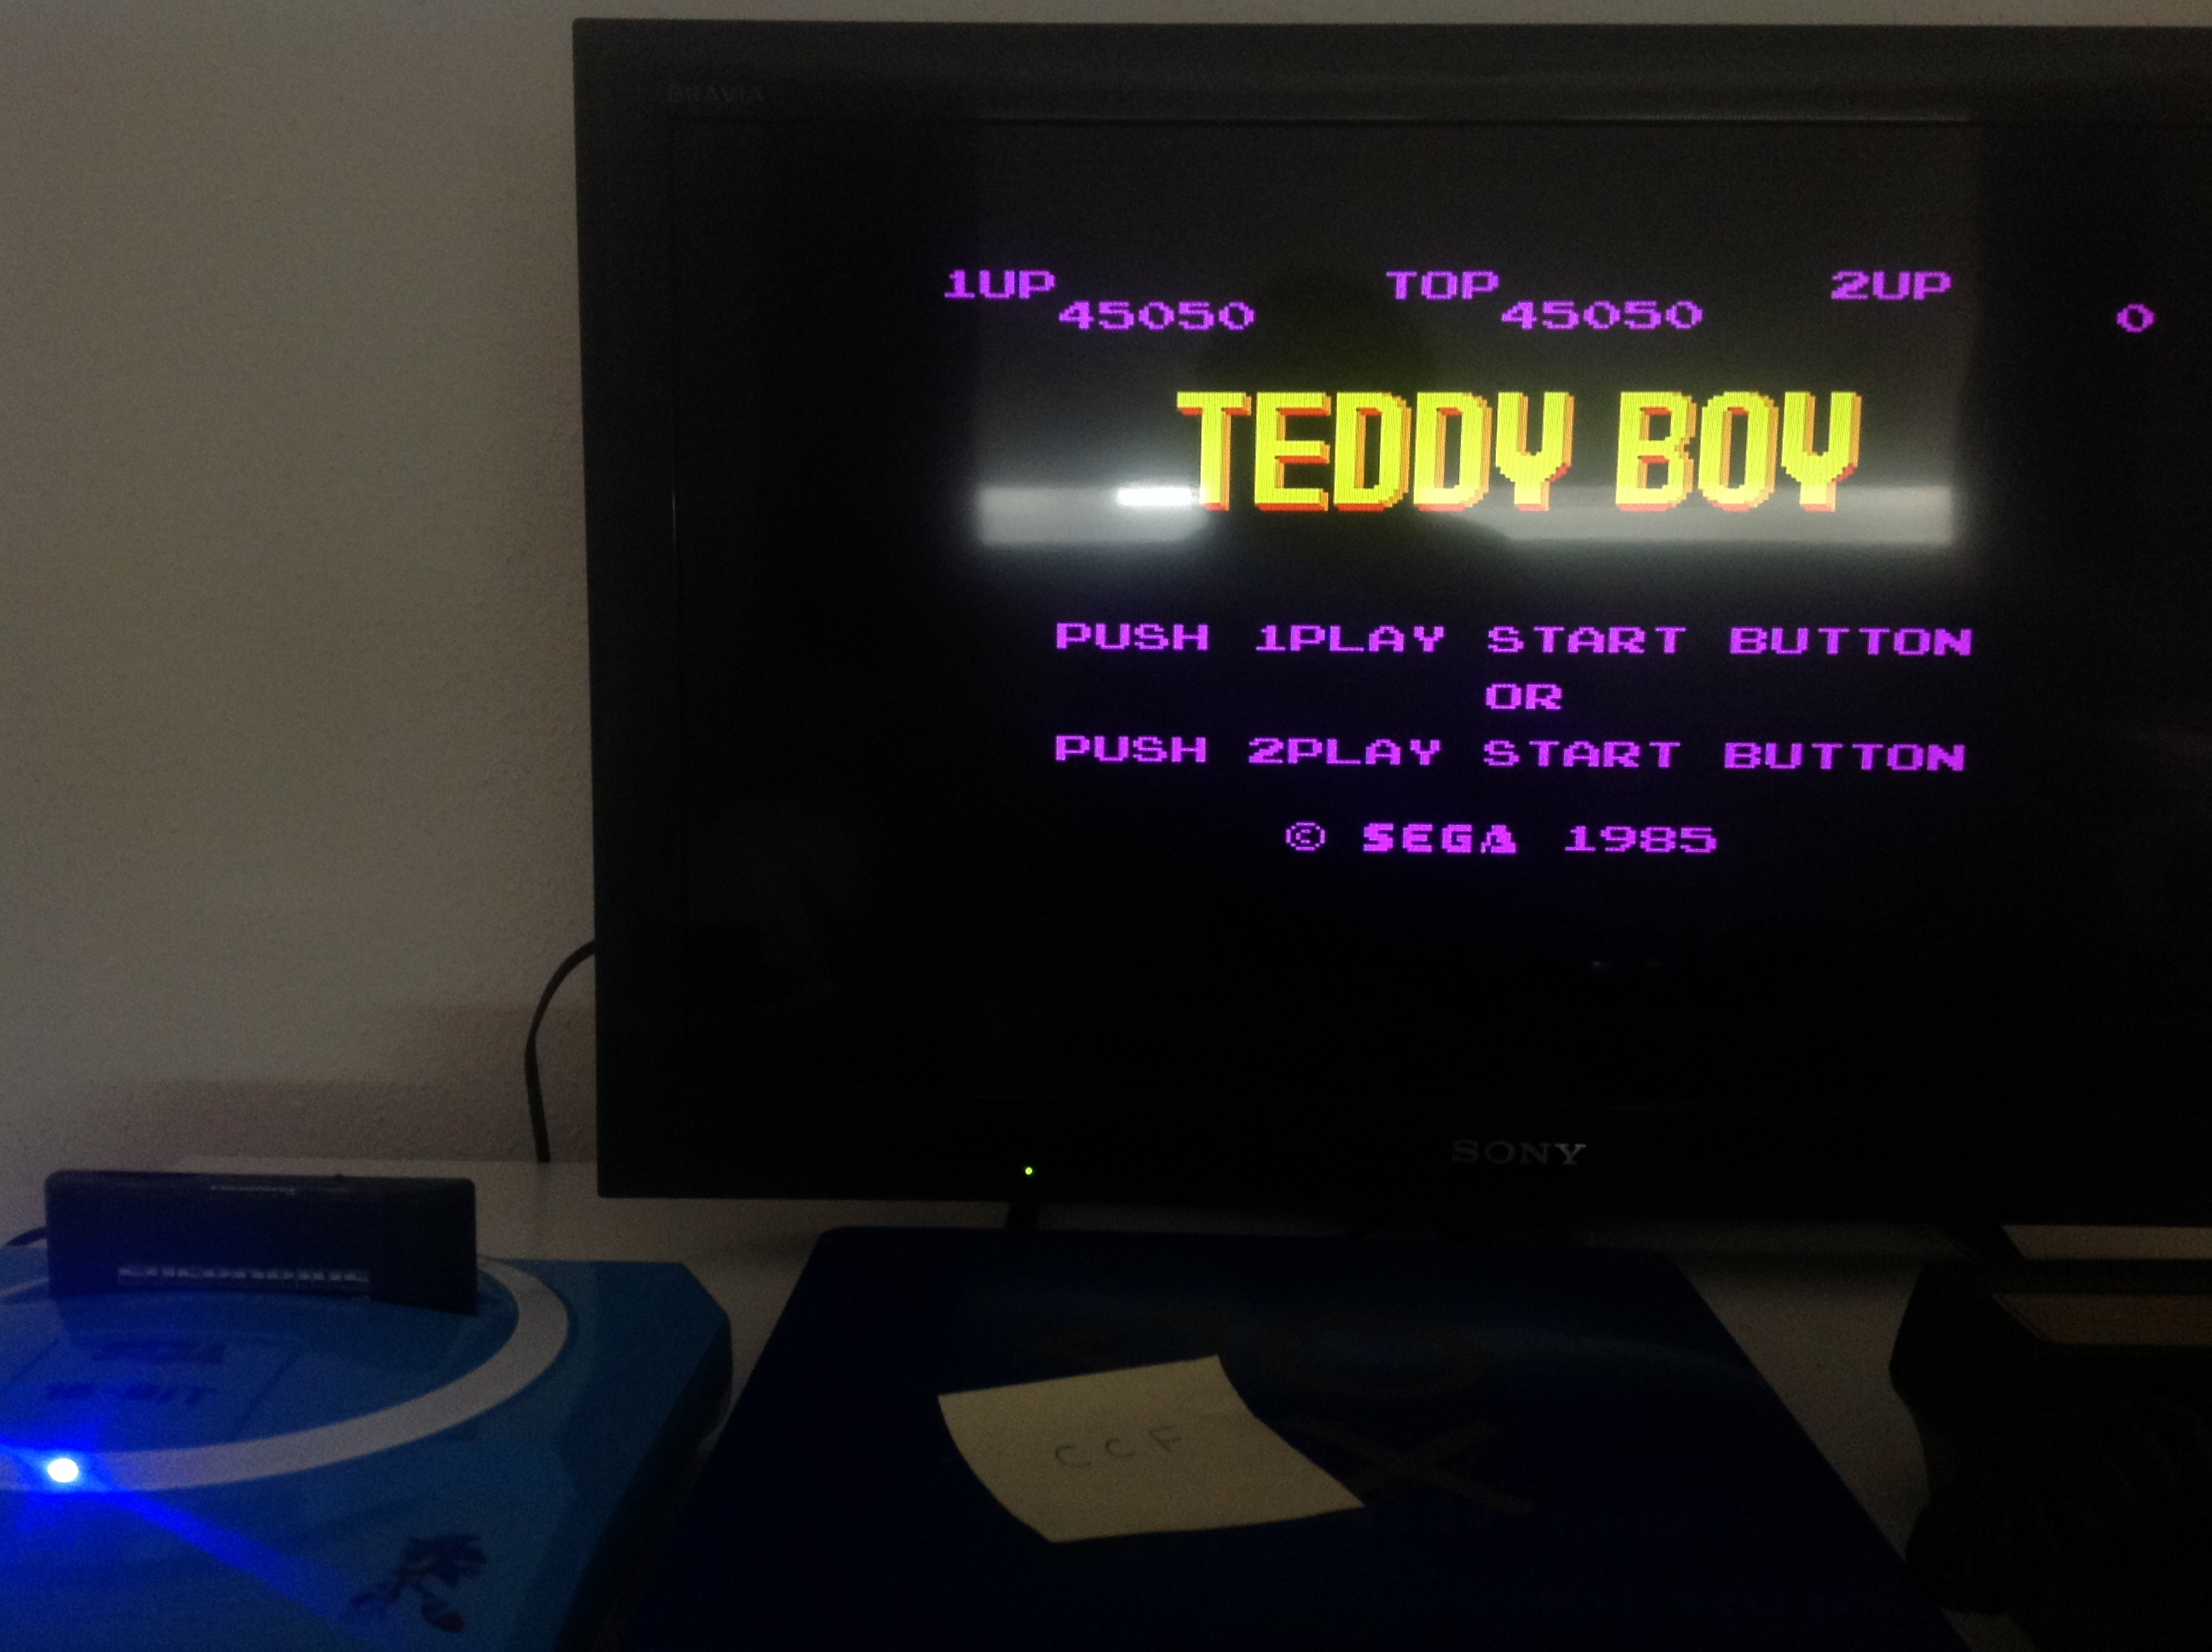 CoCoForest: Teddy Boy (Sega Master System) 45,050 points on 2018-07-21 13:33:11